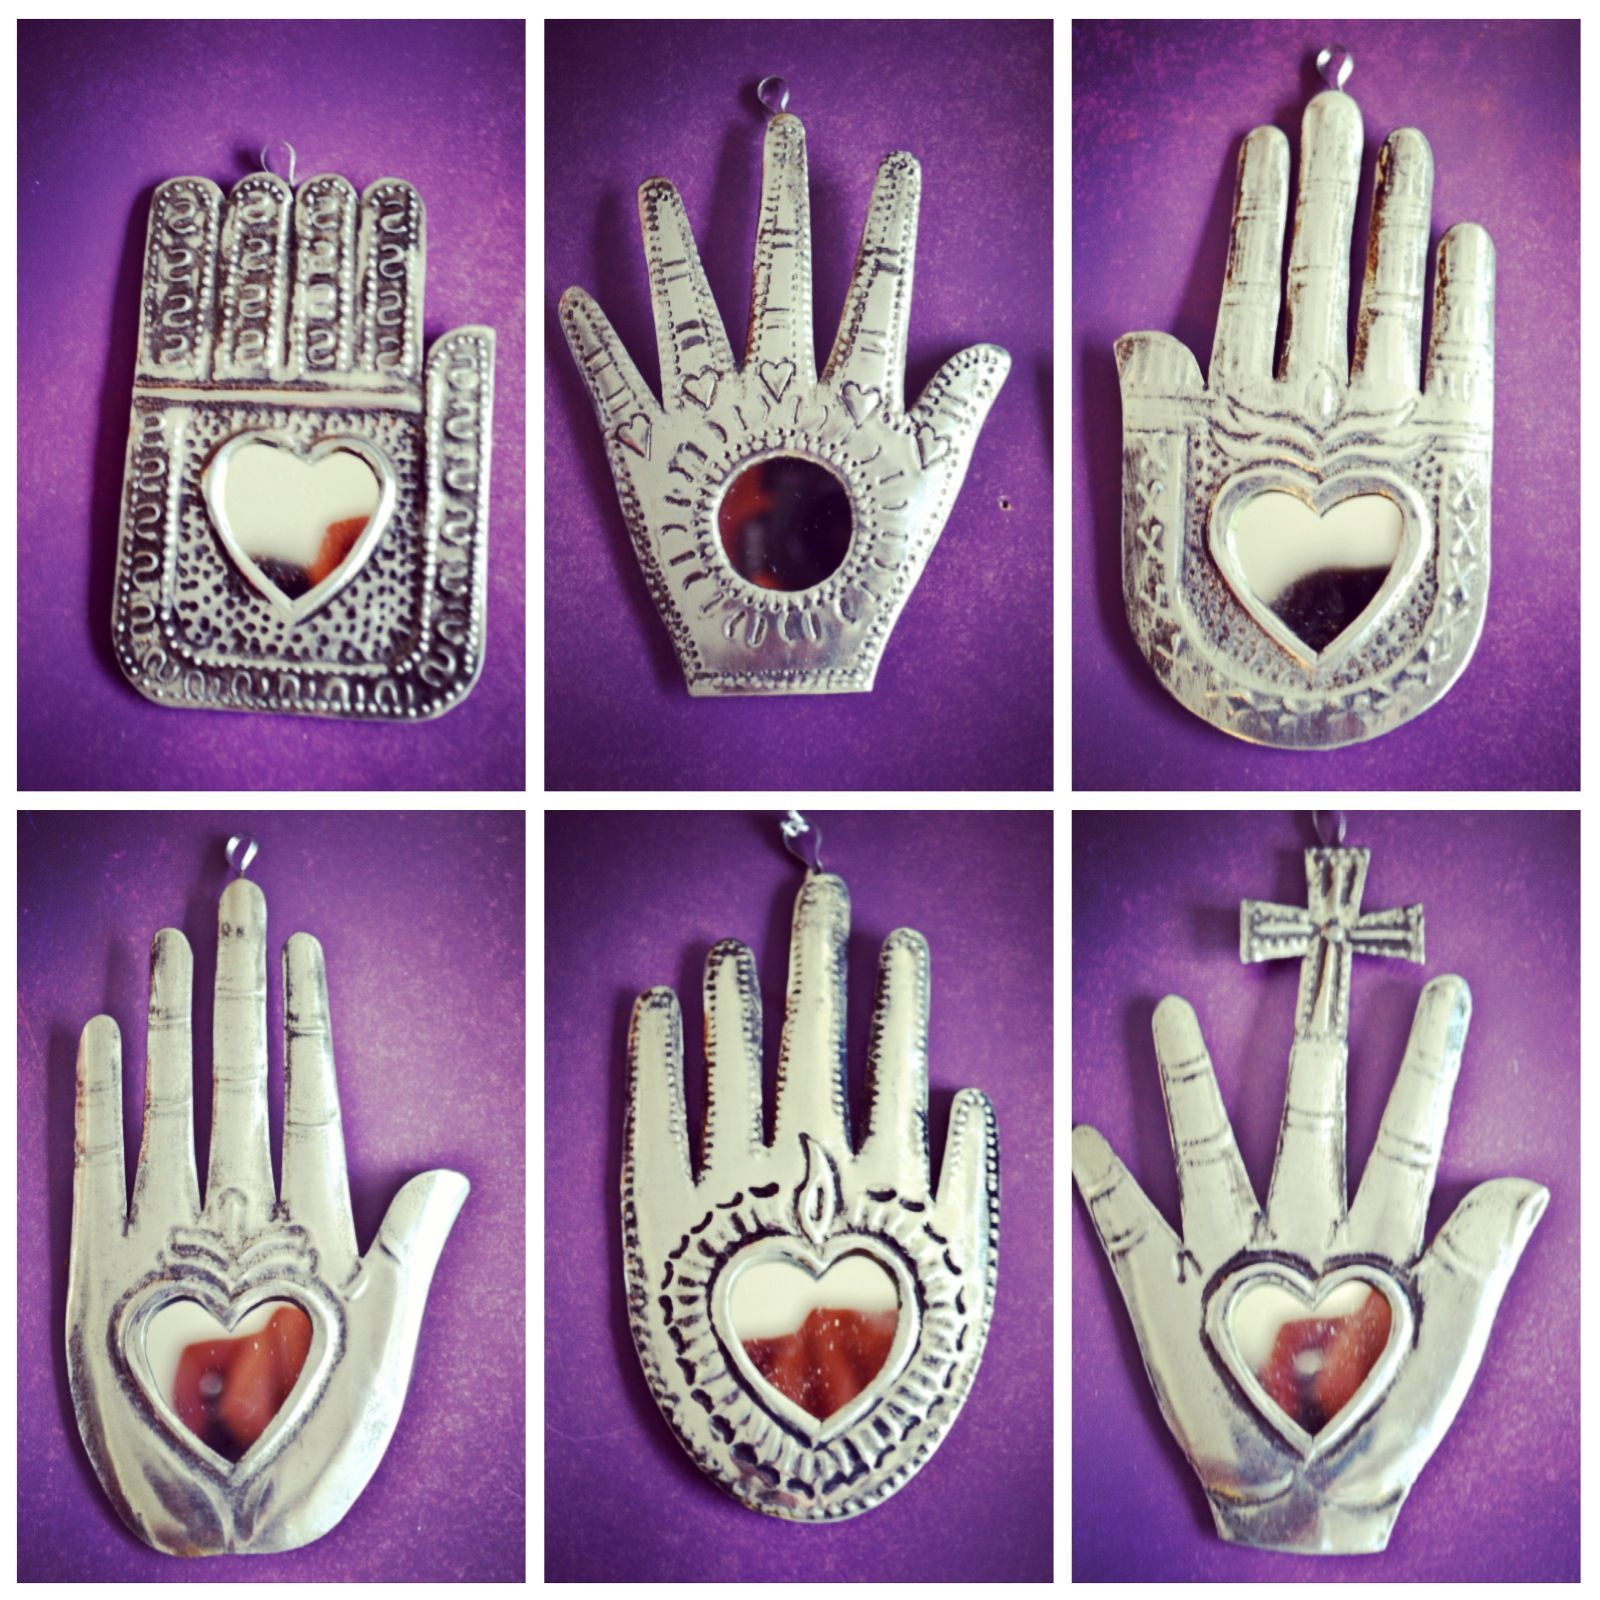 Mexican healing hands interesting they use open heart symbol in mexican healing hands interesting they use open heart symbol in chakra buycottarizona Gallery